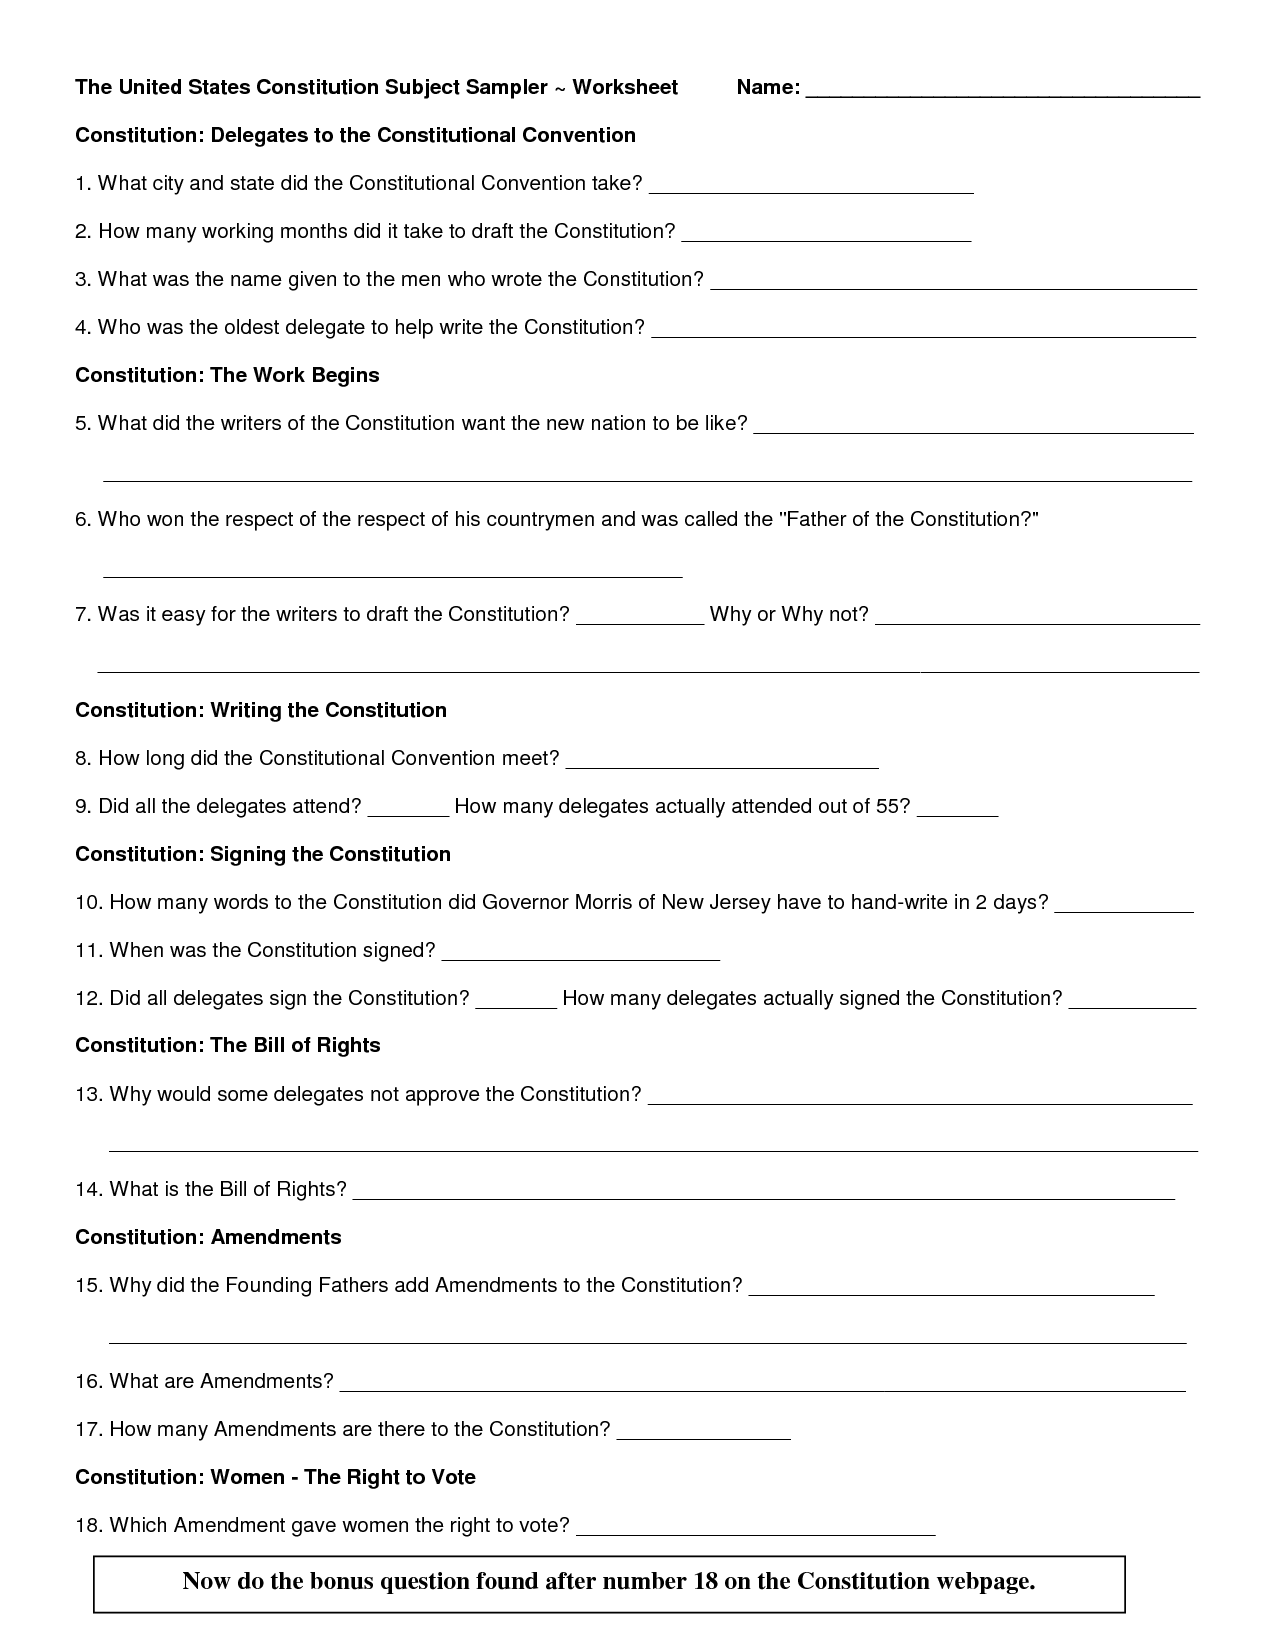 Preamble Of The Constitution Worksheet Preamble Worksheet Free Worksheets Library Download And